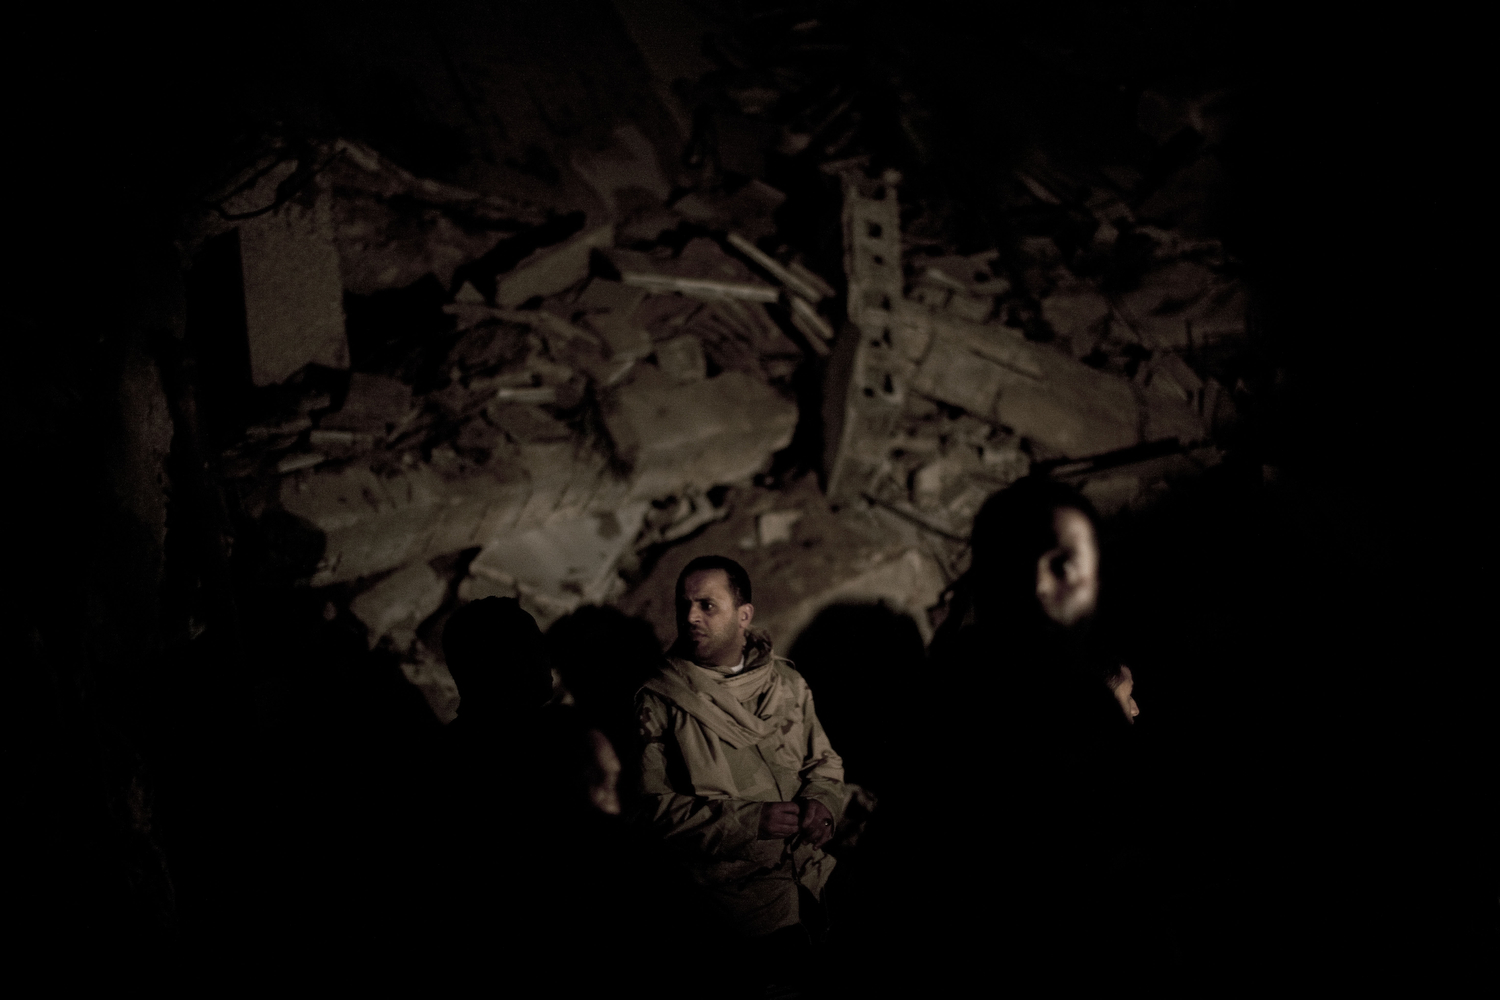 Libyan soldiers survey the damage to a building hit by a missile in Gaddafi's compound, March 21, 2011.